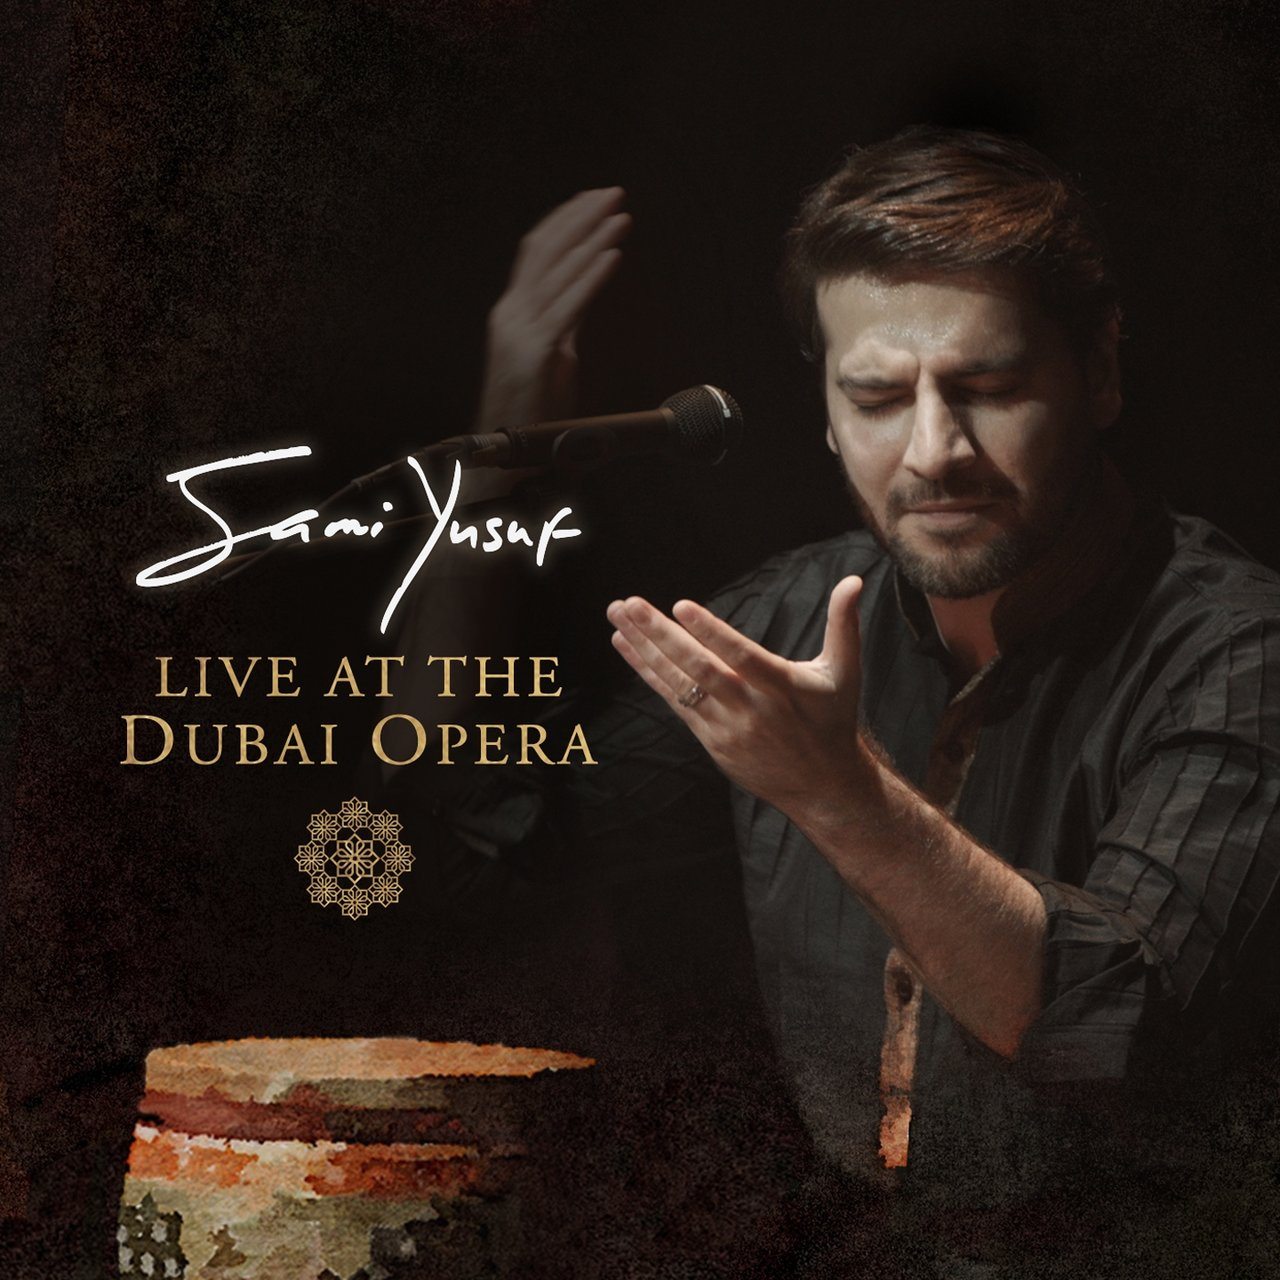 Live at the Dubai Opera